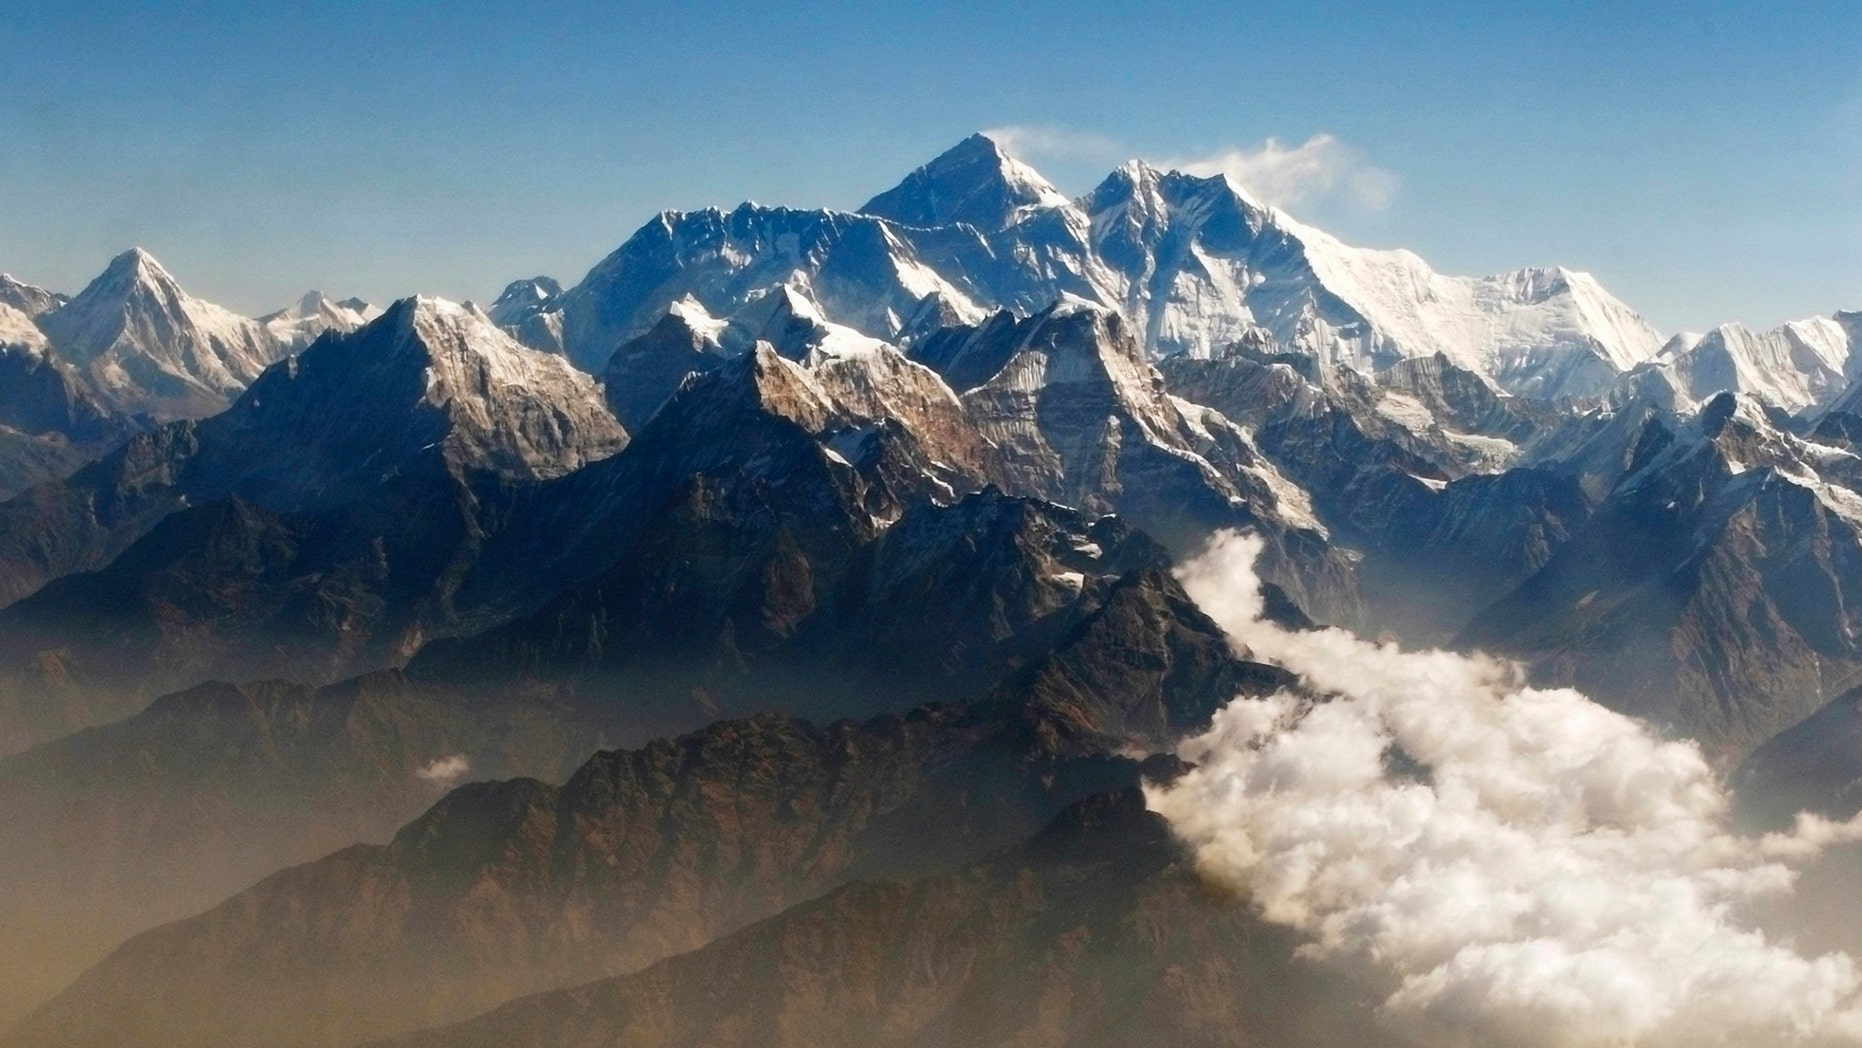 Mount Everest (C), the world highest peak, and other peaks of the Himalayan range are seen from air during a mountain flight from Kathmandu April 24, 2010. (REUTERS/Tim Chong)